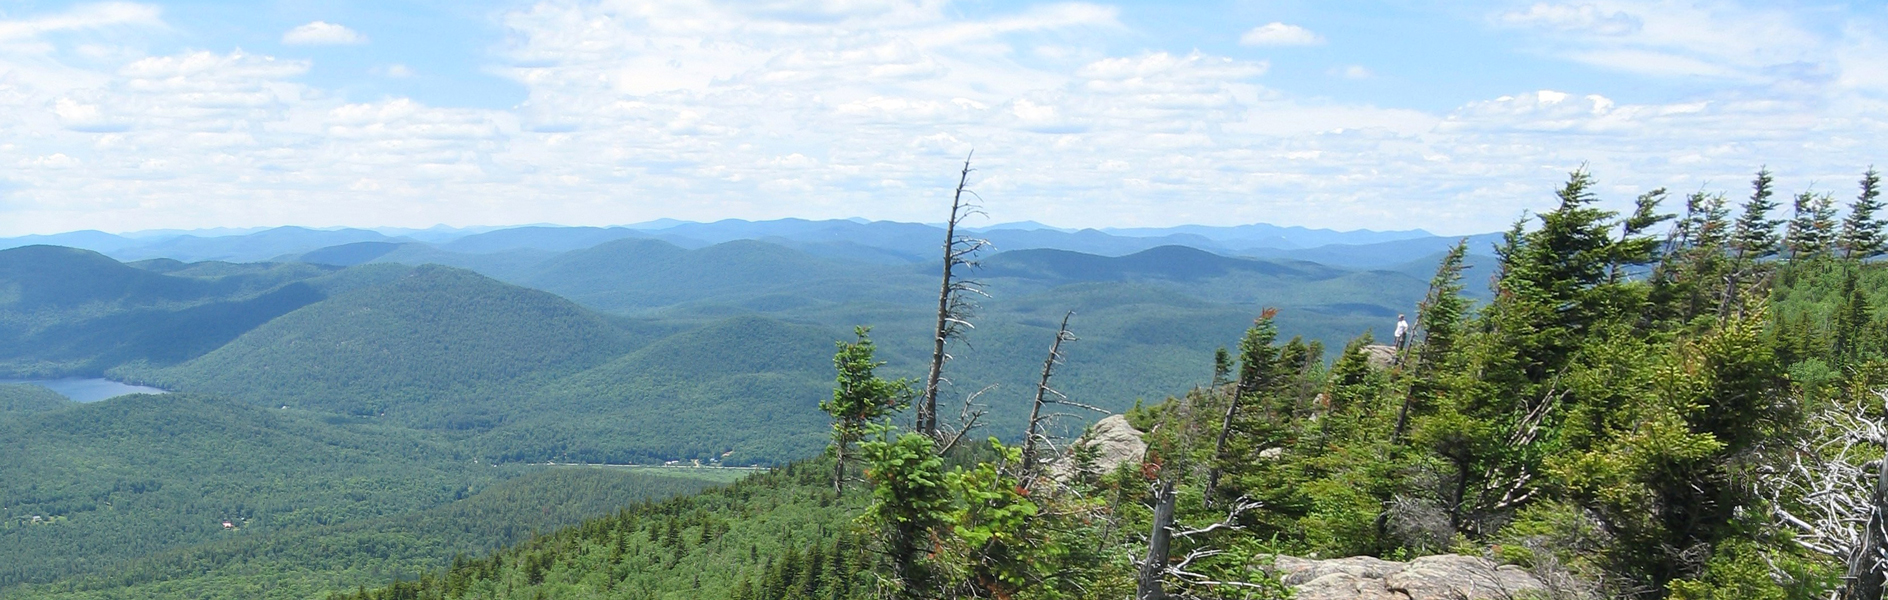 Southern Adirondack Region seen from atop Crane Mountain